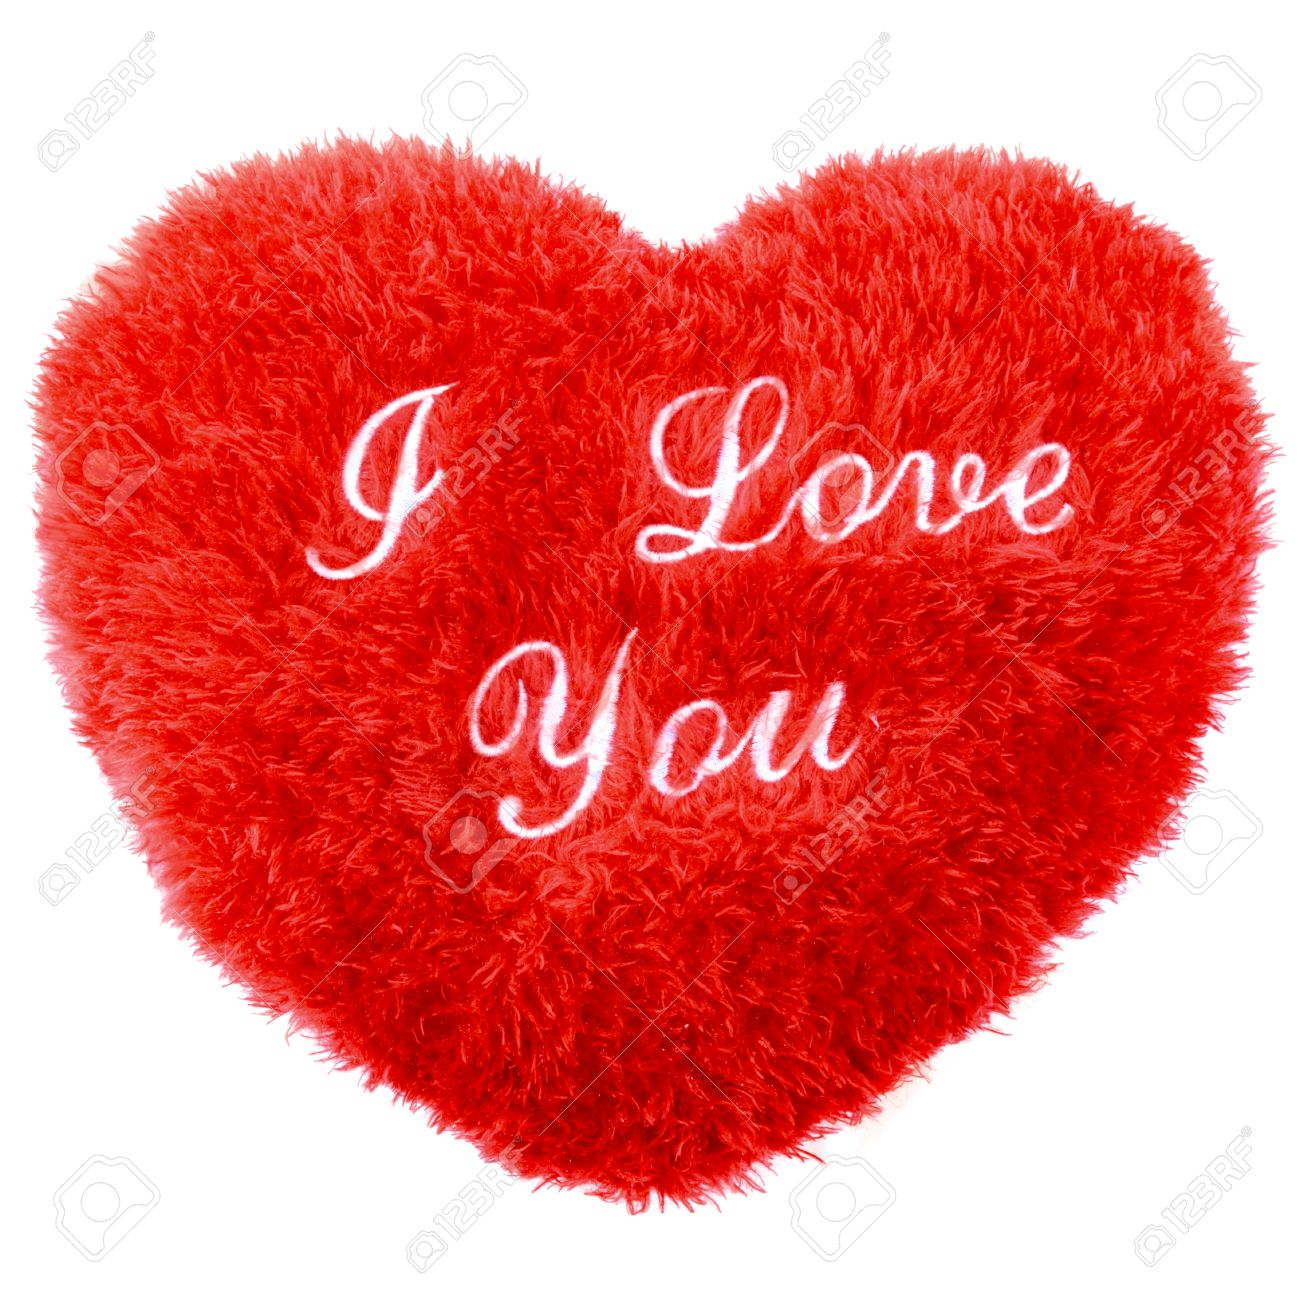 fluffy i love you heart shape valentines day pillow stock photo